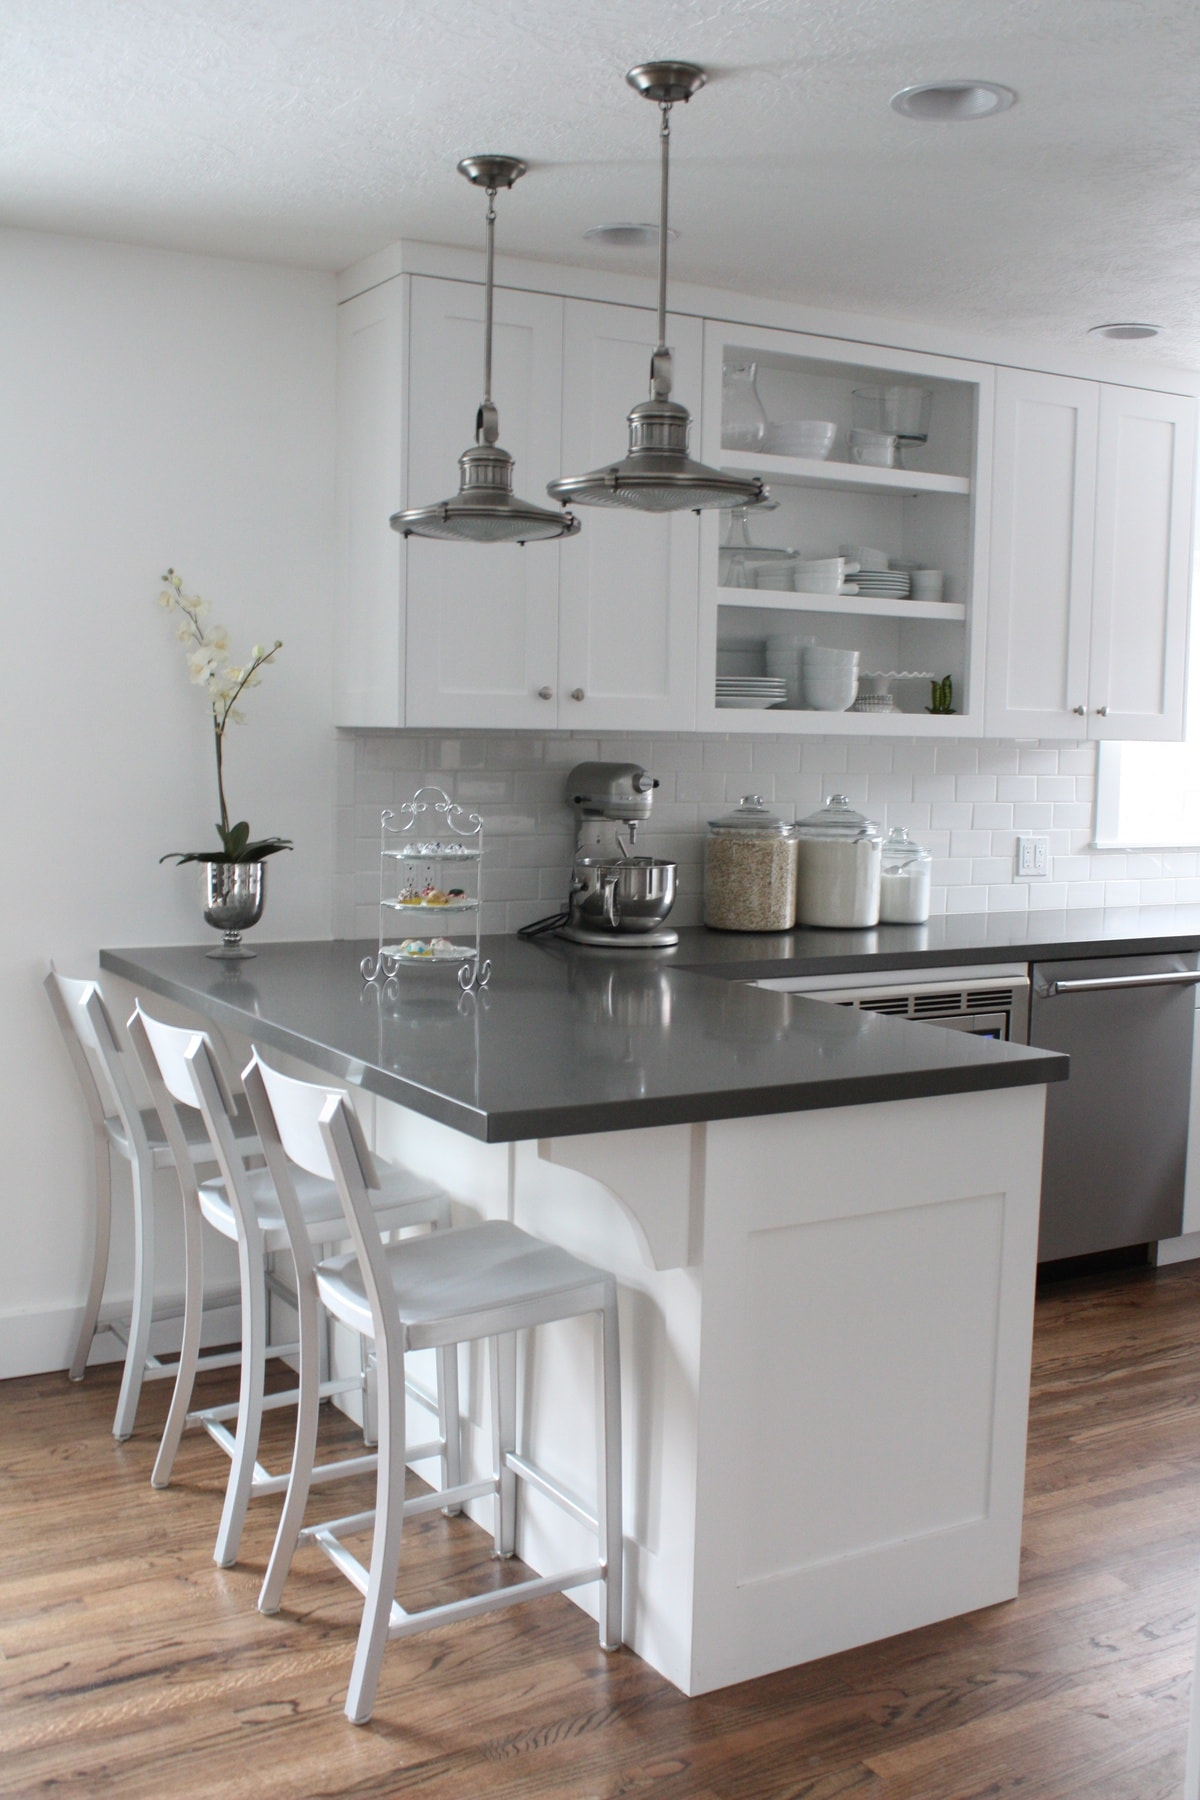 Pictures Of Kitchen Countertops : kitchen-counter-chairs